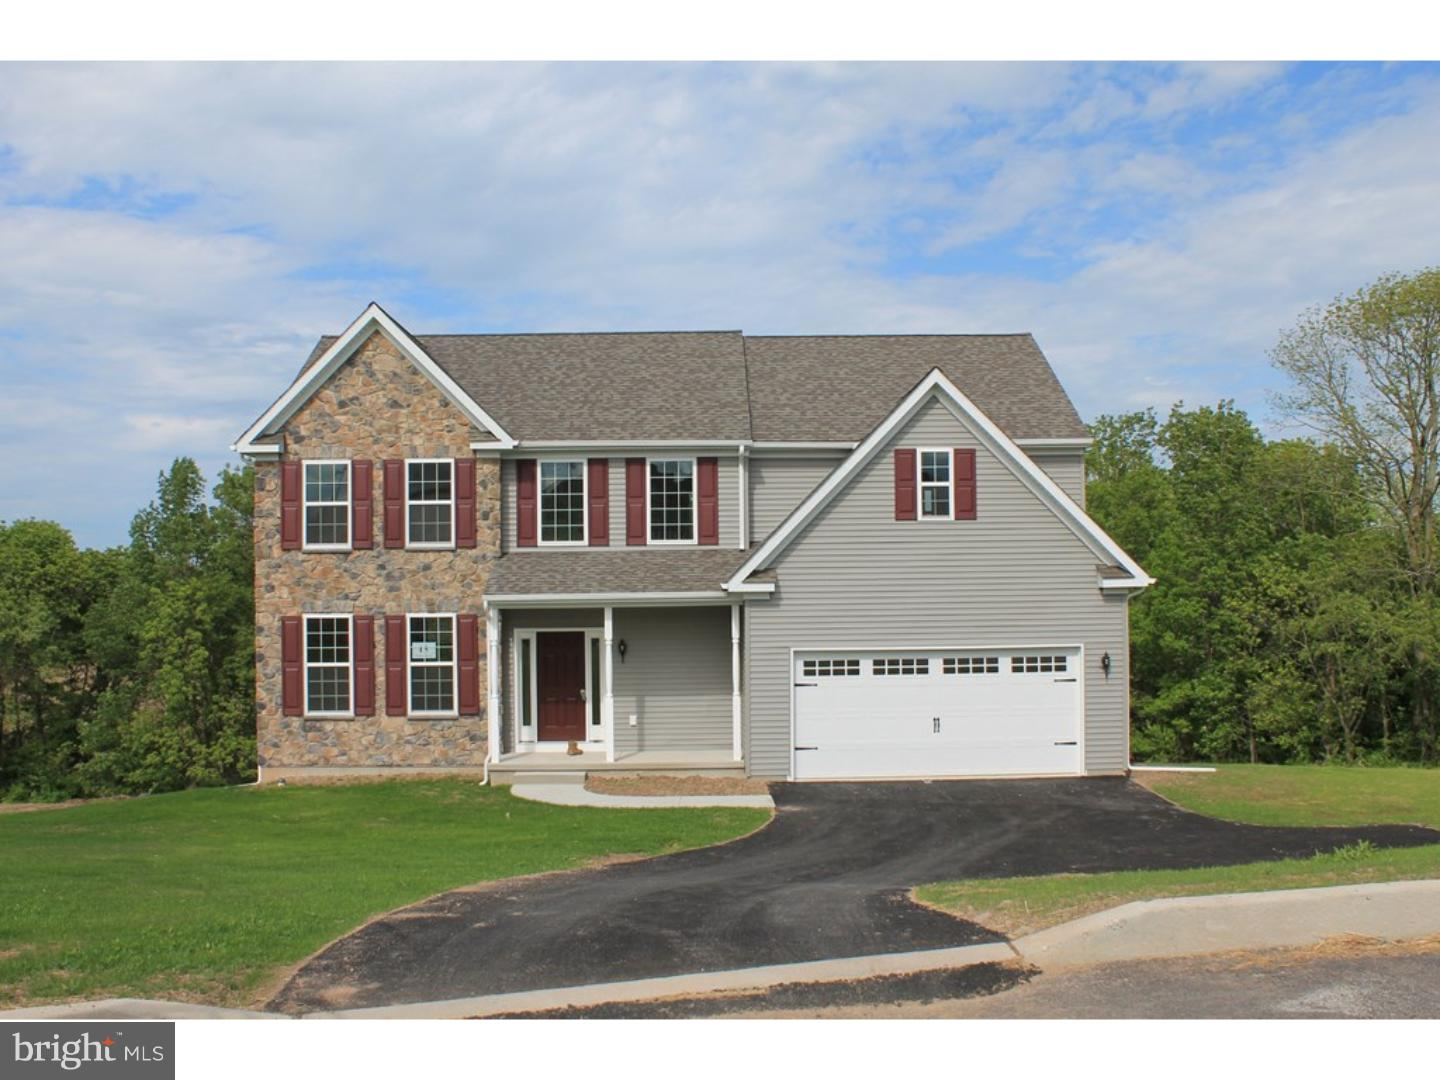 50 AVALON CIRCLE, BARTO, PA 19504